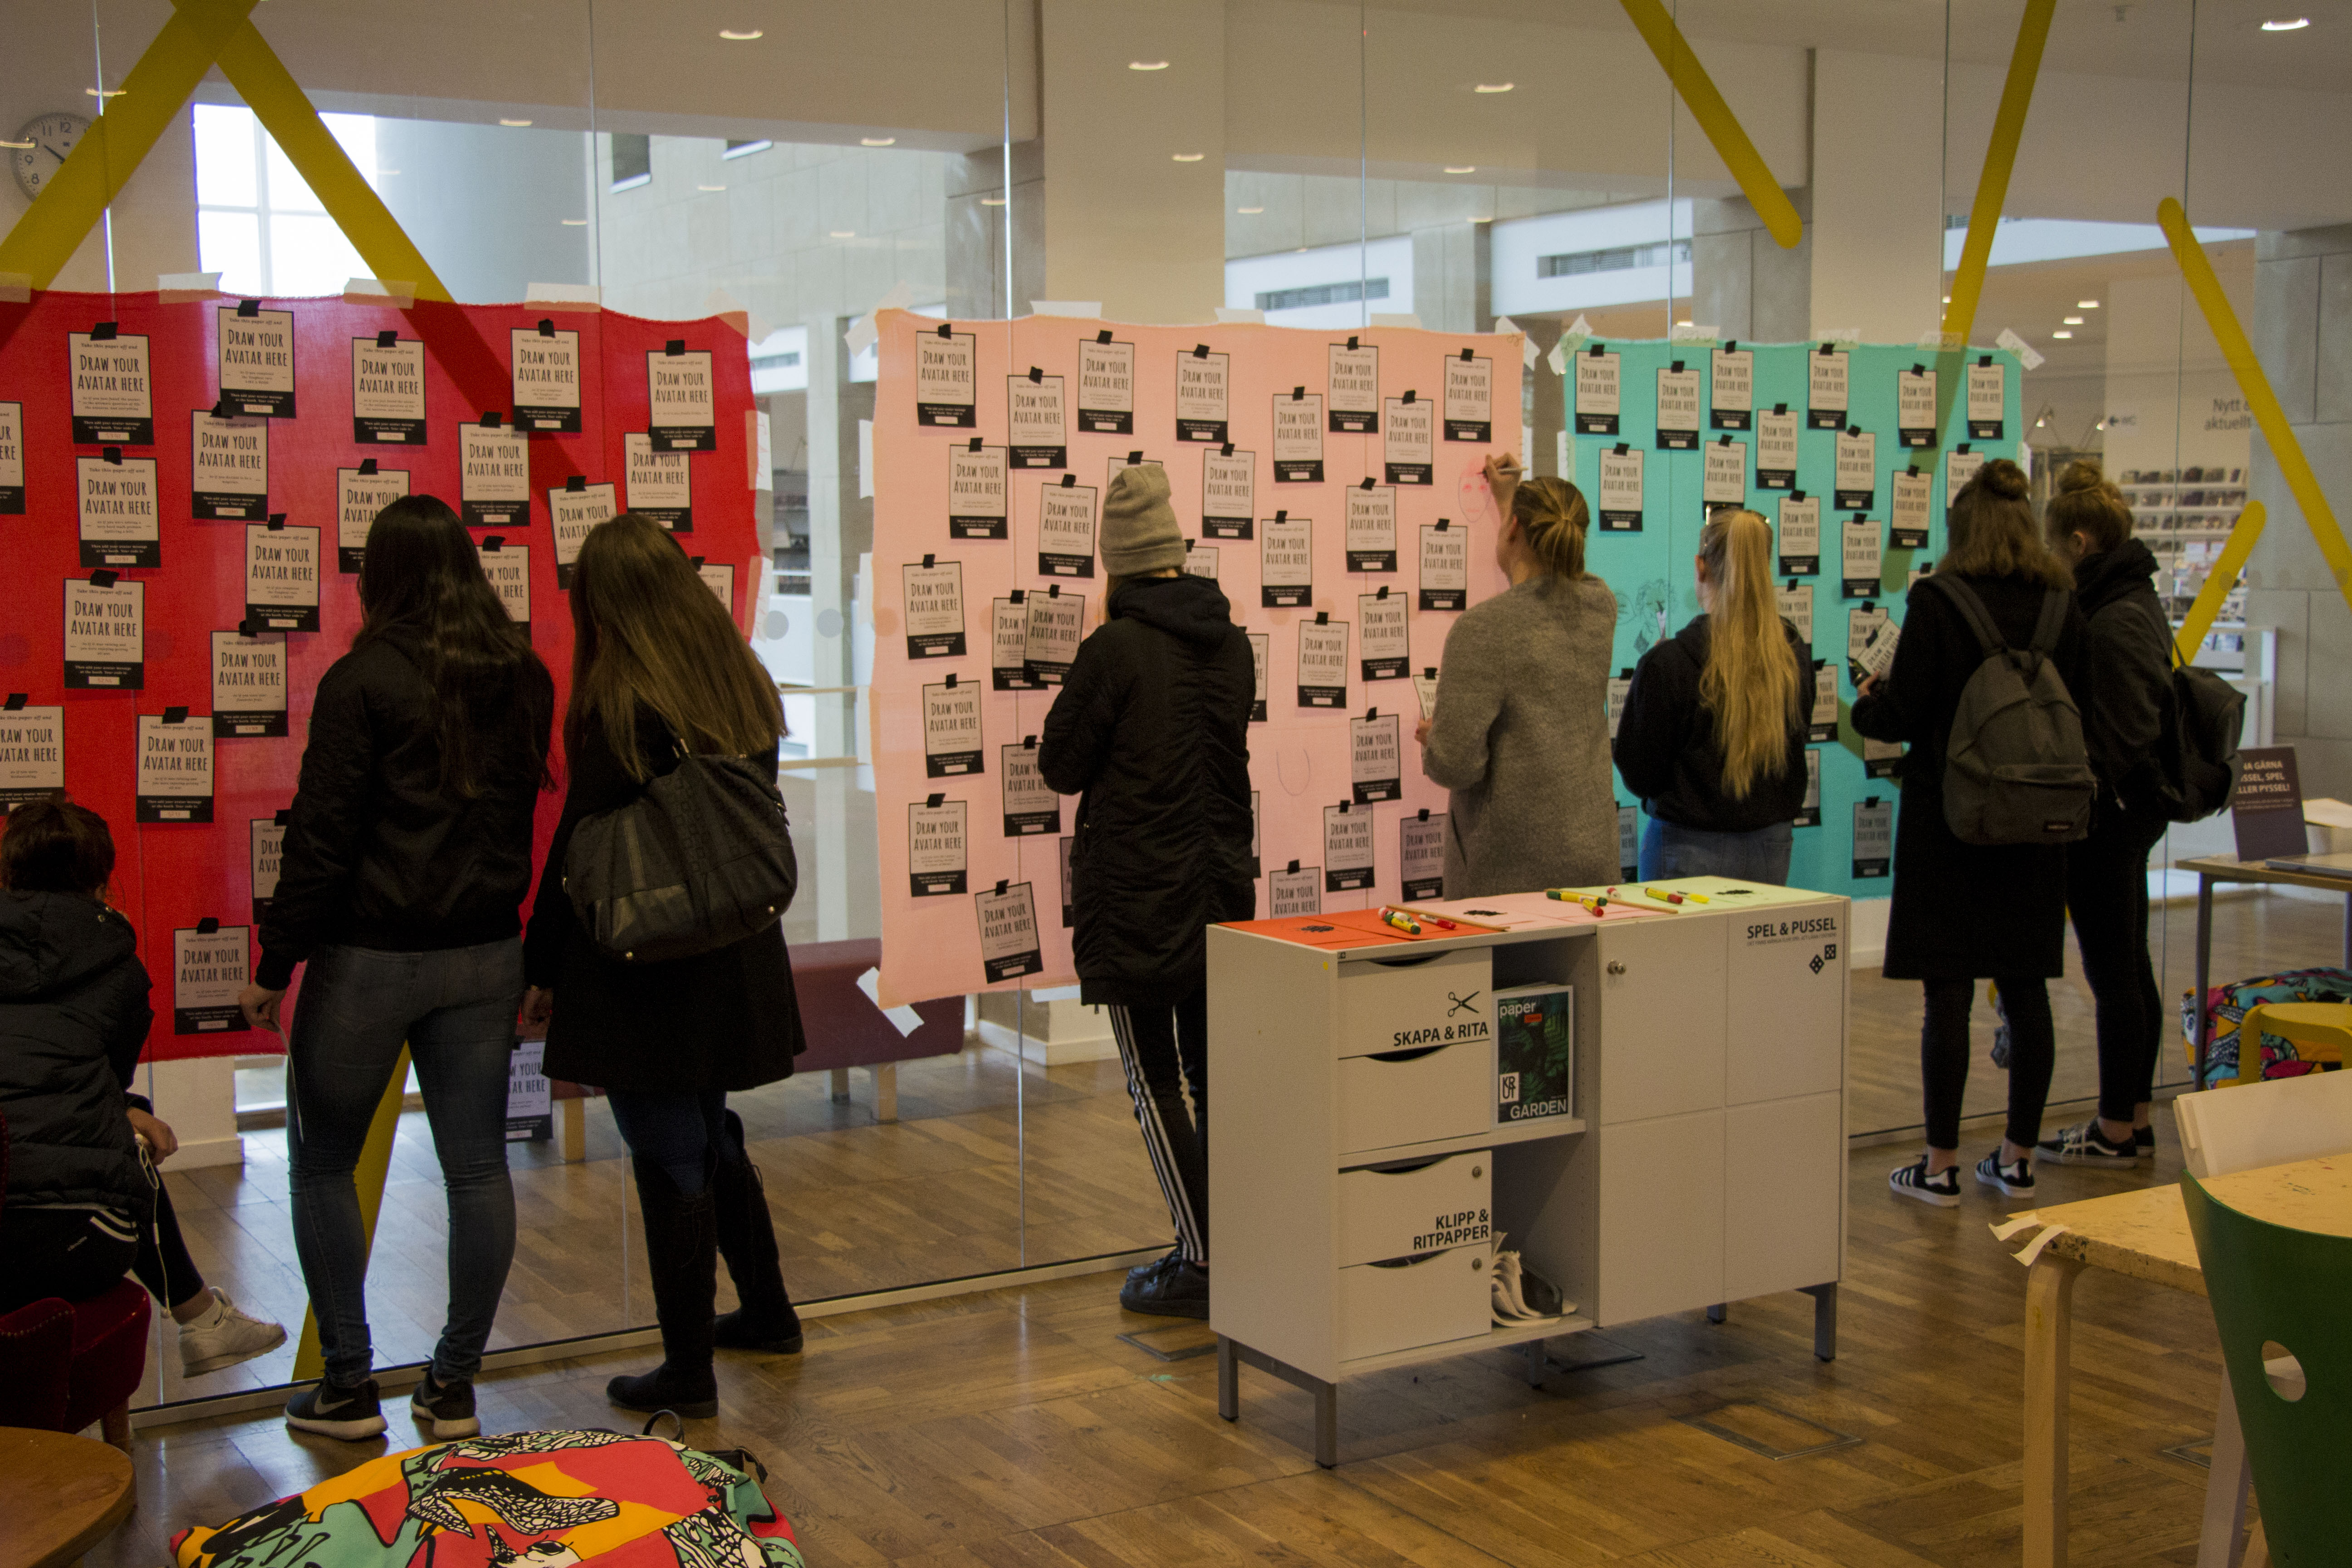 Design experiment #7: We are Malmö. A fashion collection created by the hands of many through an installation at the City Library.